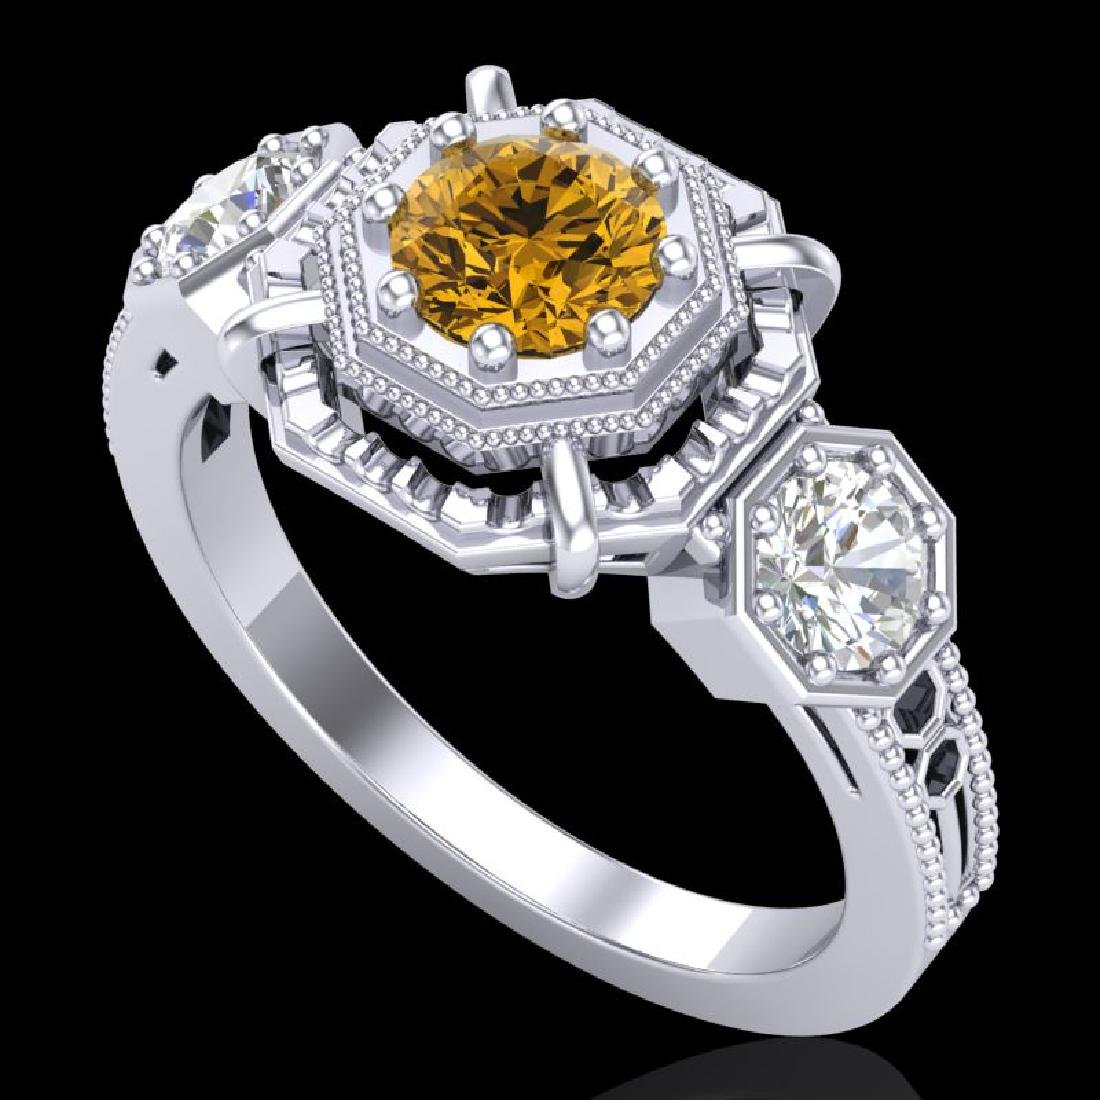 1.01 CTW Intense Fancy Yellow Diamond Art Deco 3 Stone